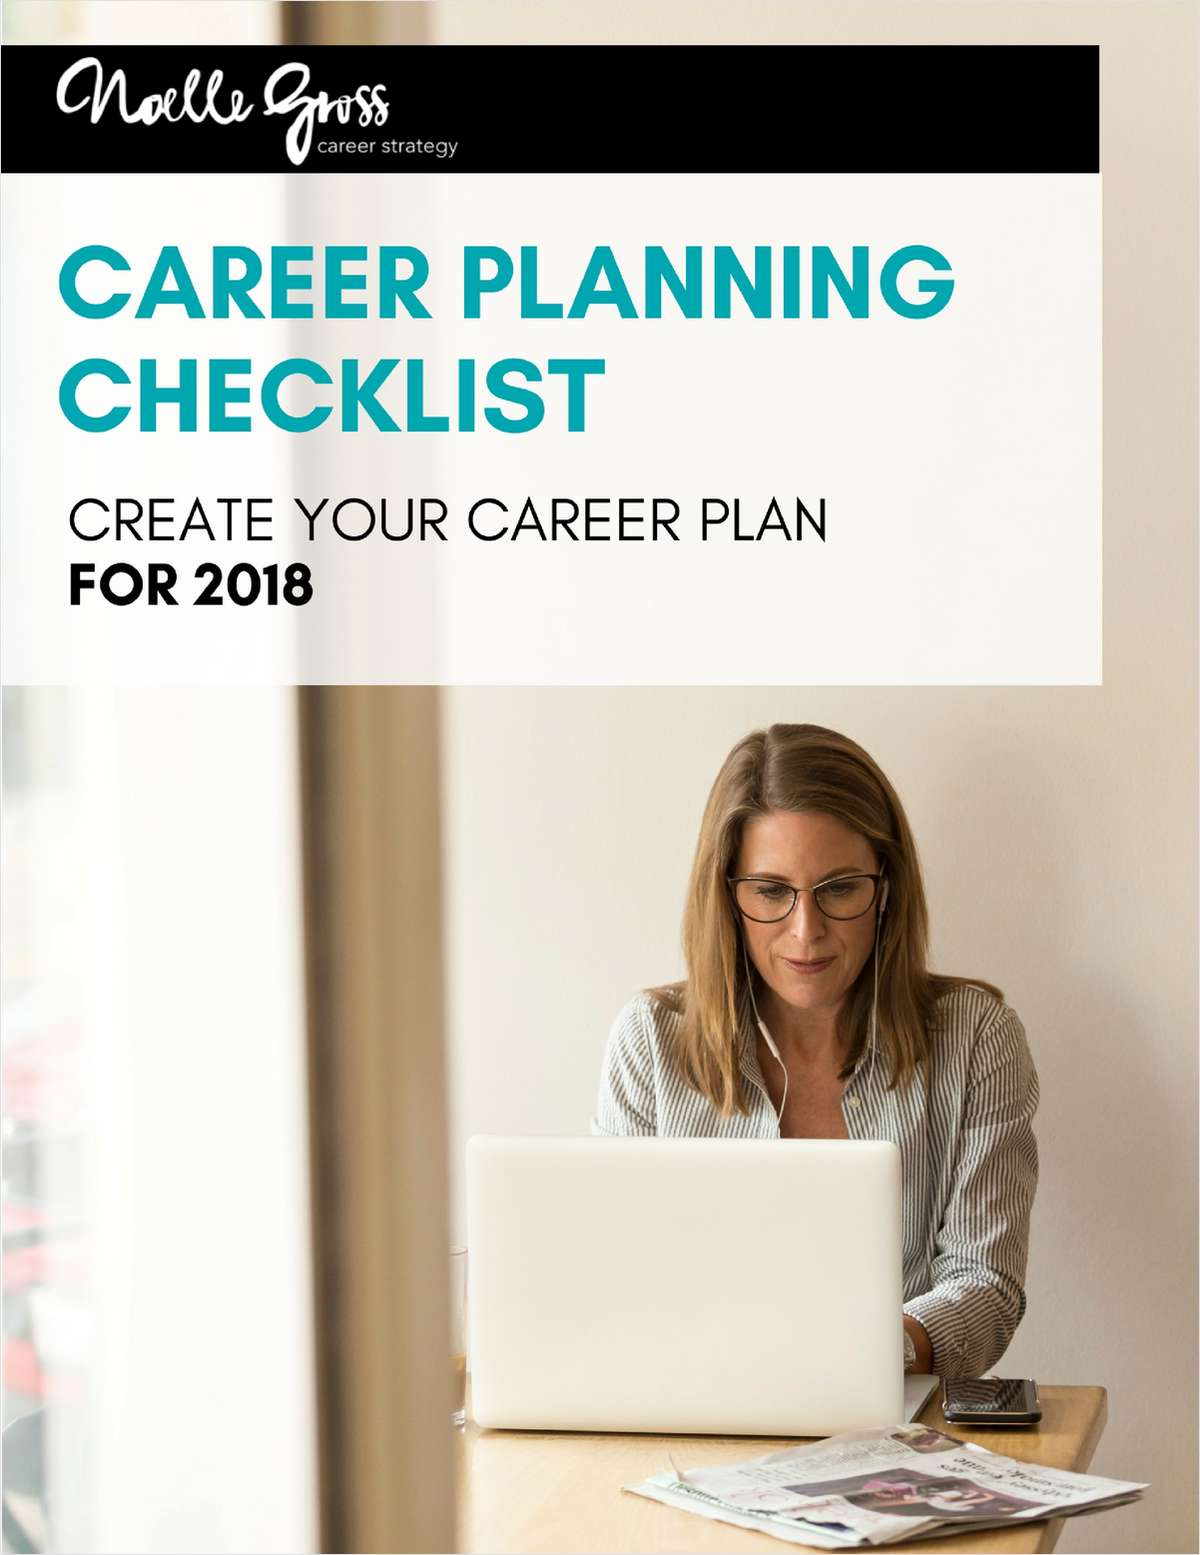 Career Planning Checklist - Create Your Career Plan for 2018